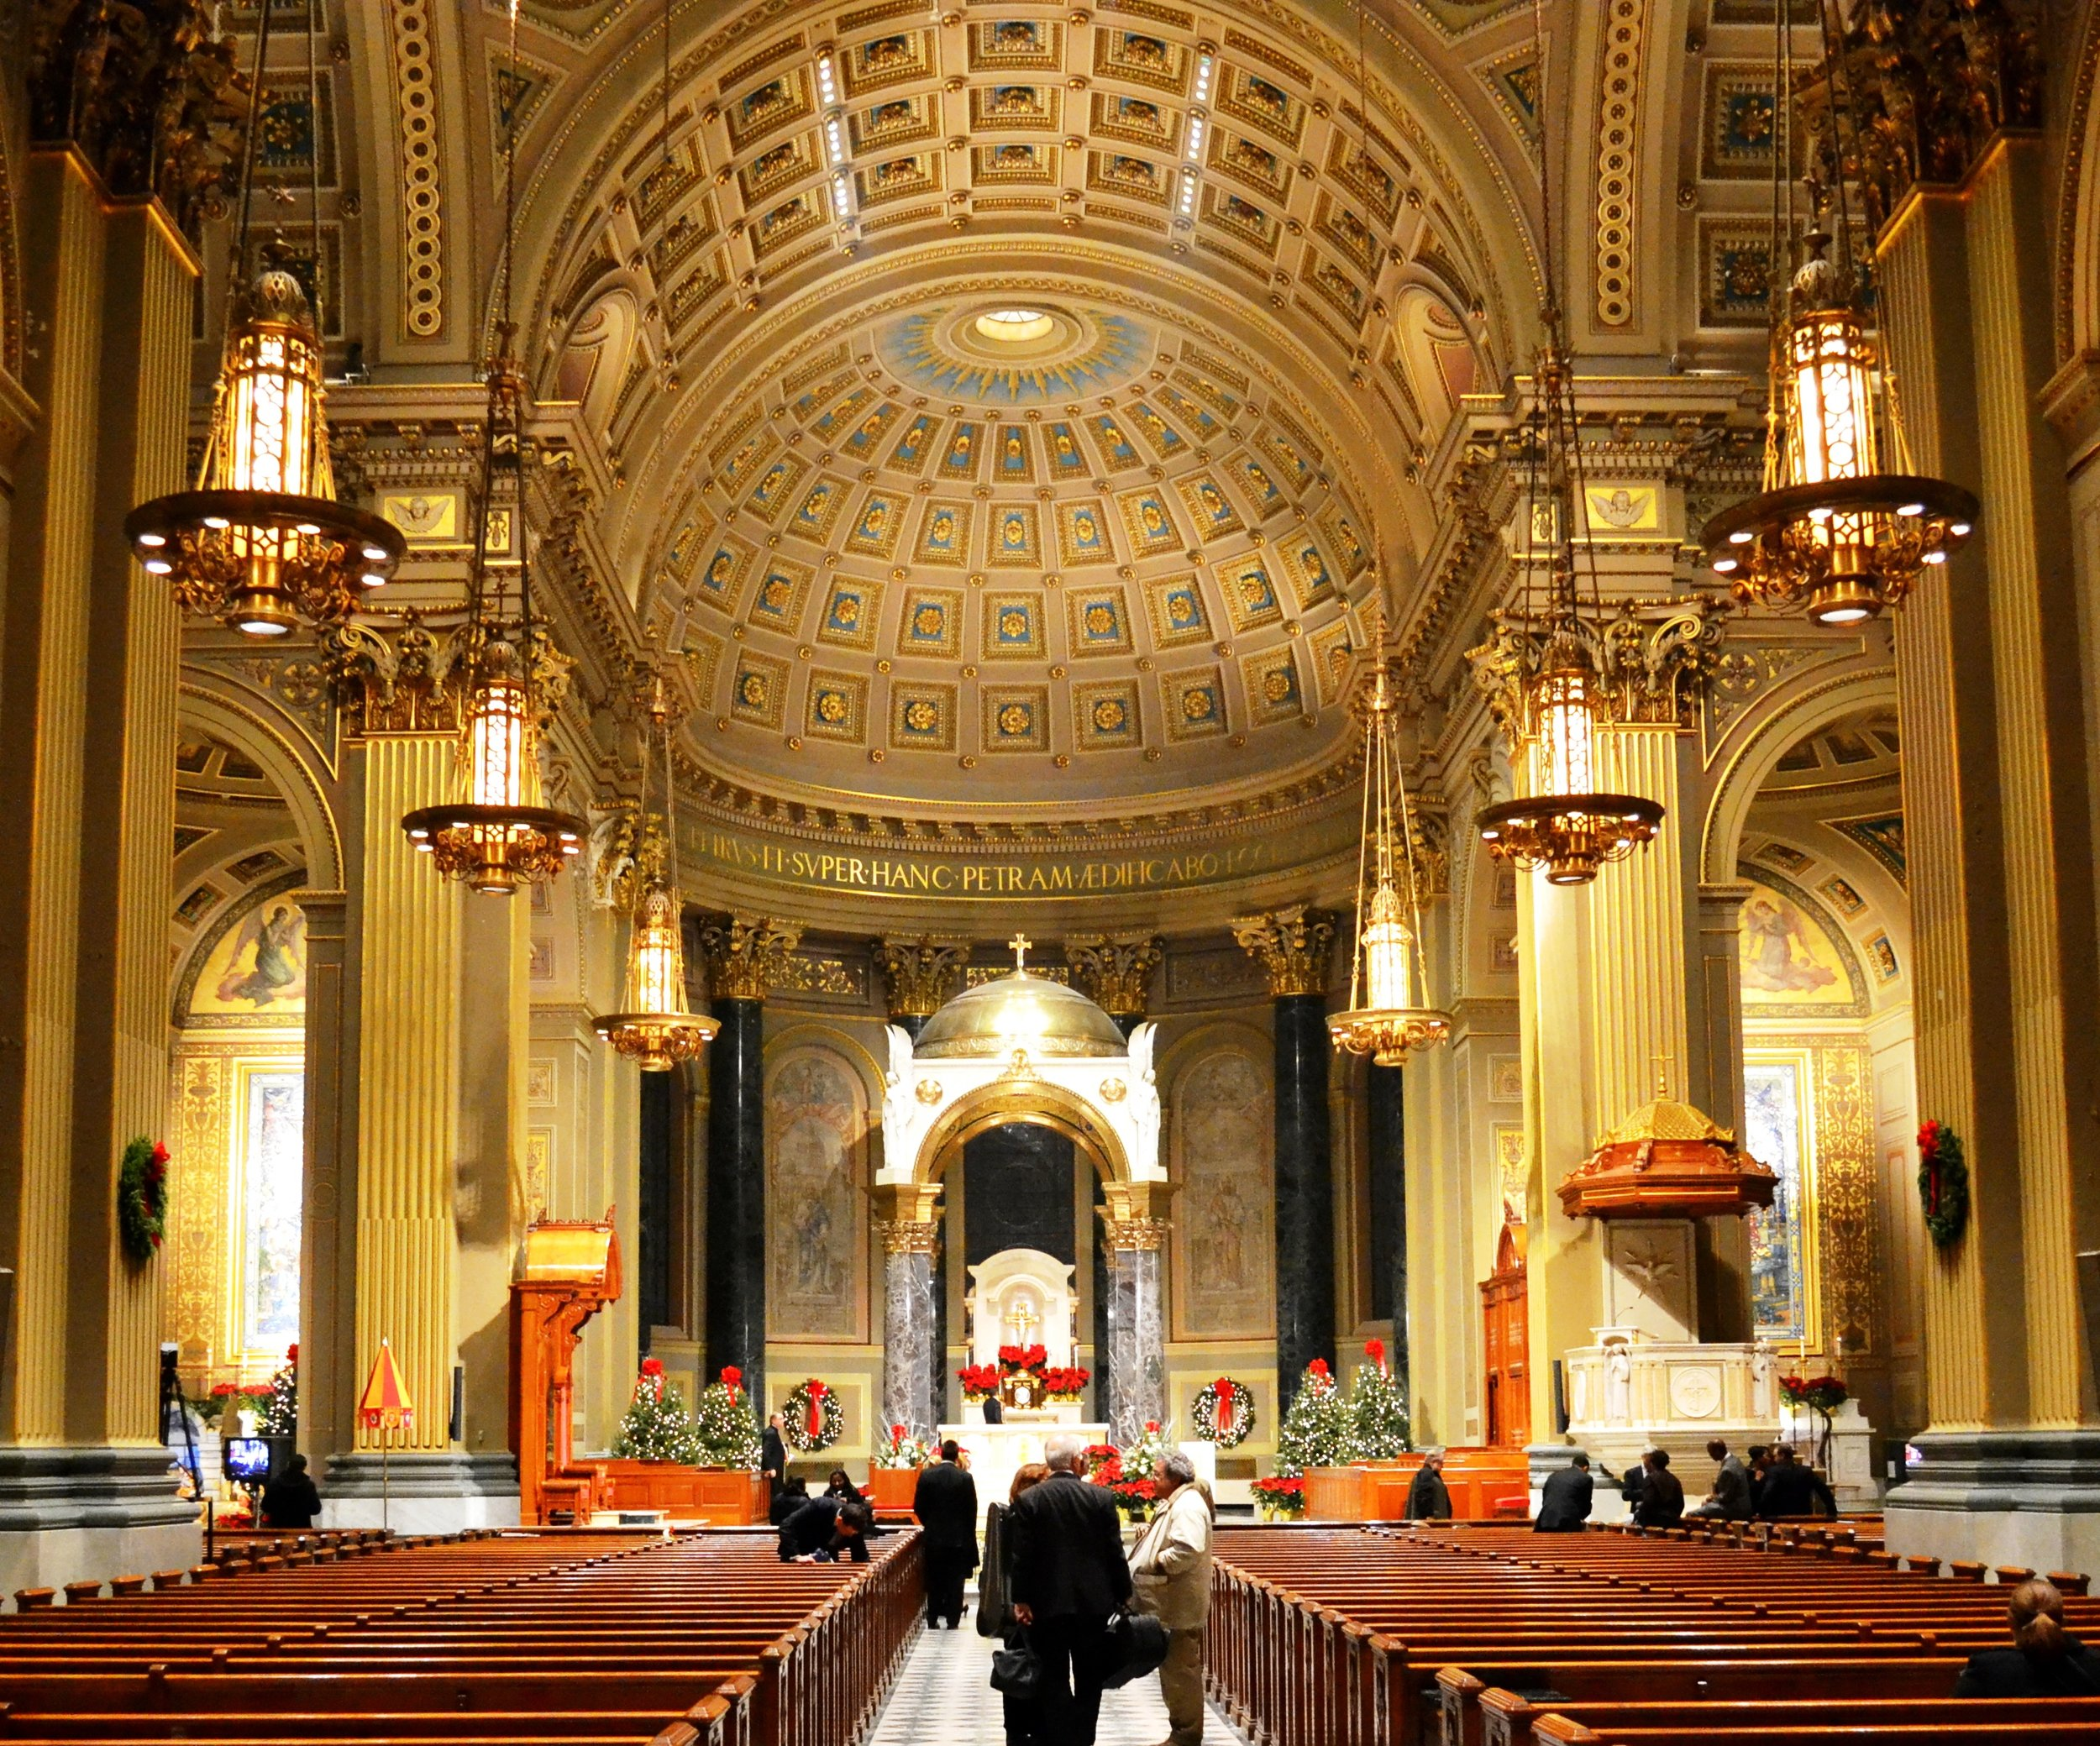 Interior_Cathedral_Basilica_of_Saints_Peter_and_Paul_crop.jpeg